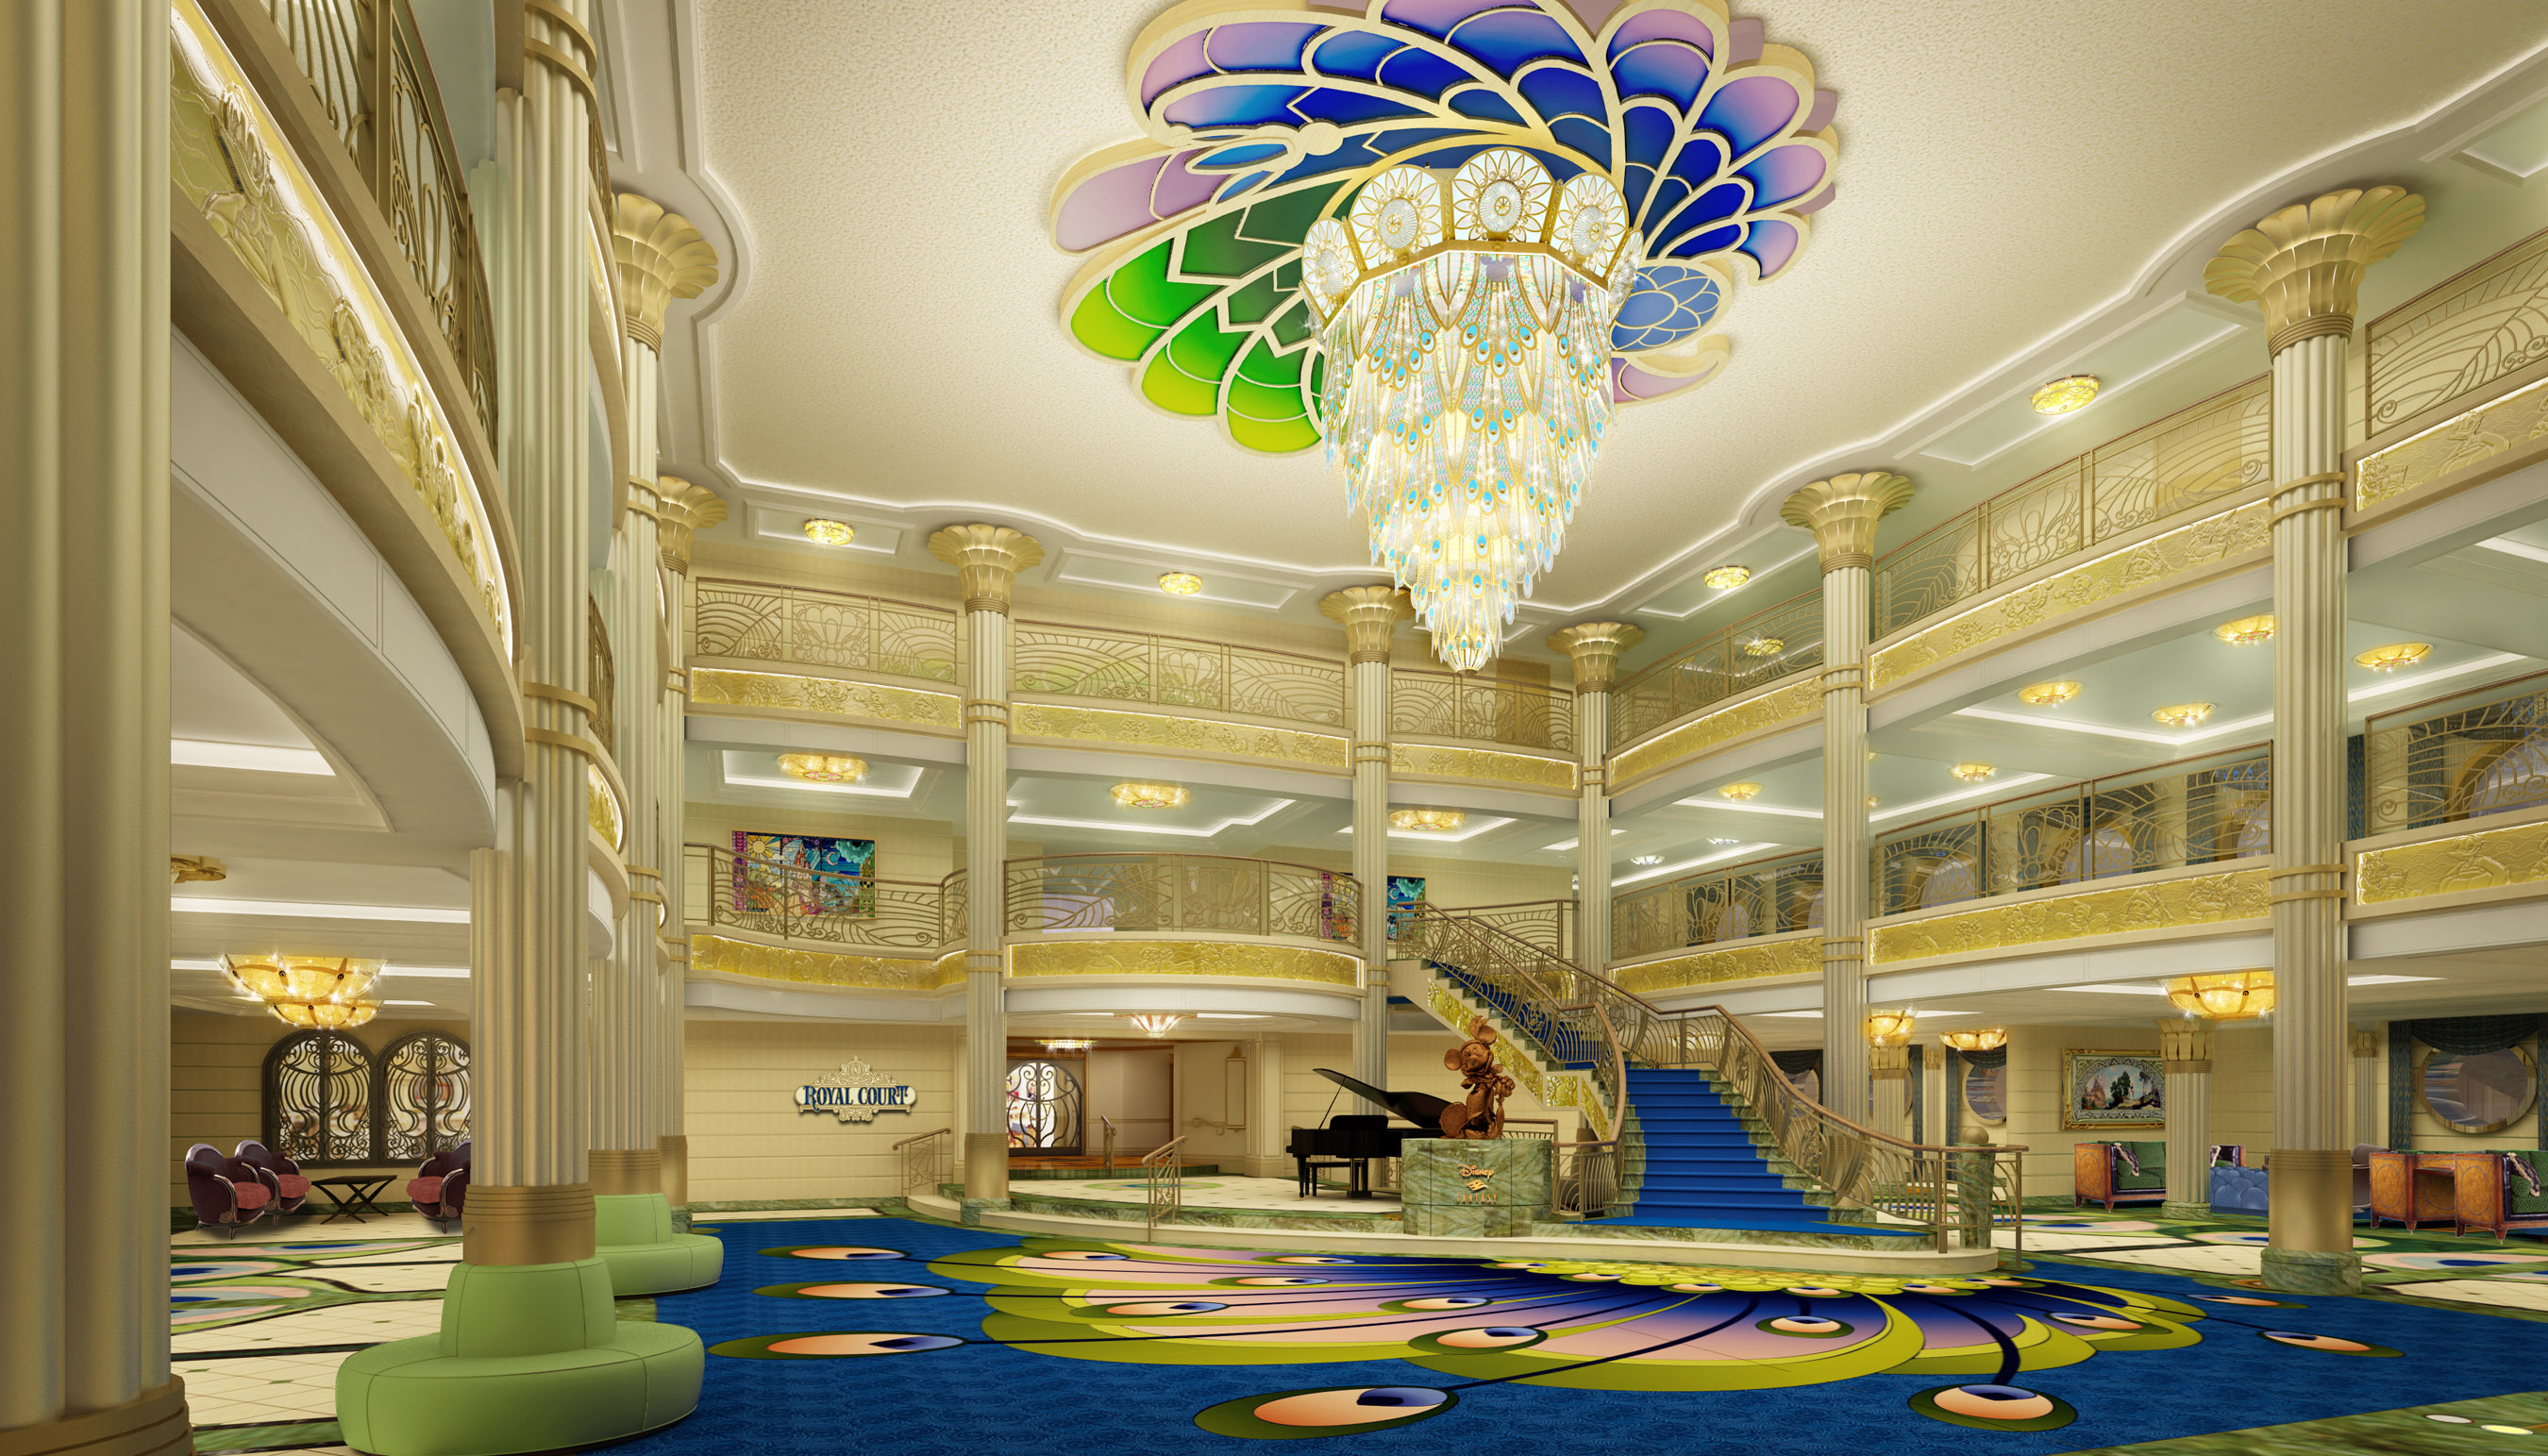 Dcl S Disney Fantasy To Feature Mademoiselle Minnie And